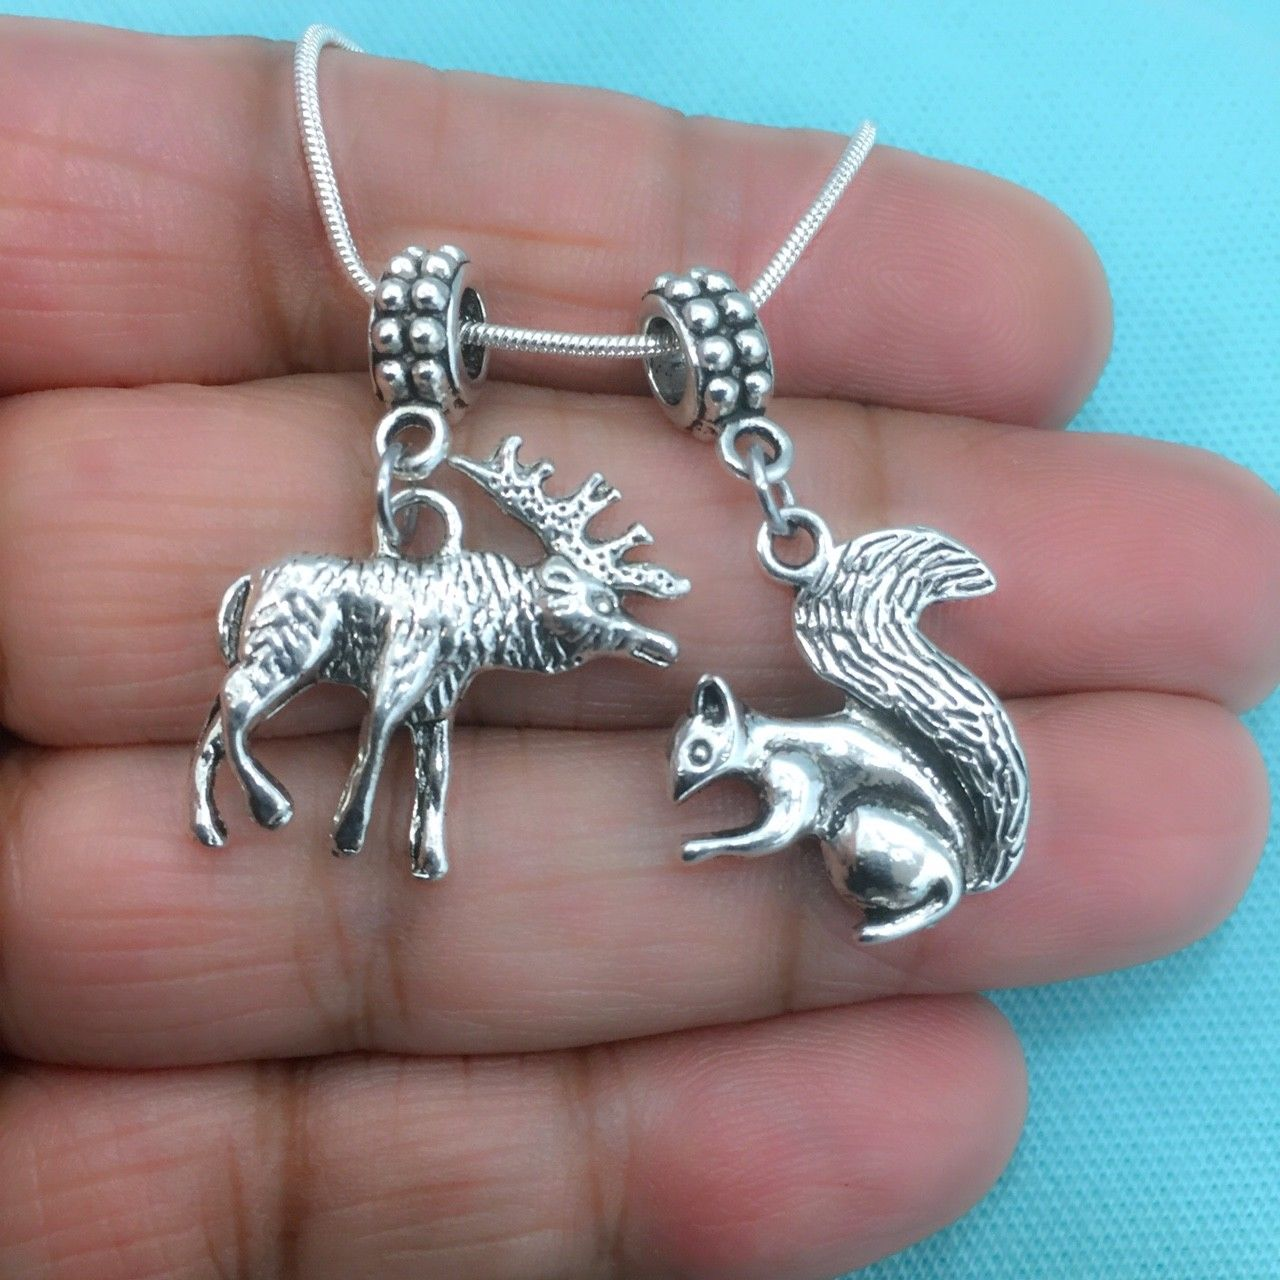 SUPERNATURAL: Moose and Squirrel Charms Fit Beaded Bracelet.